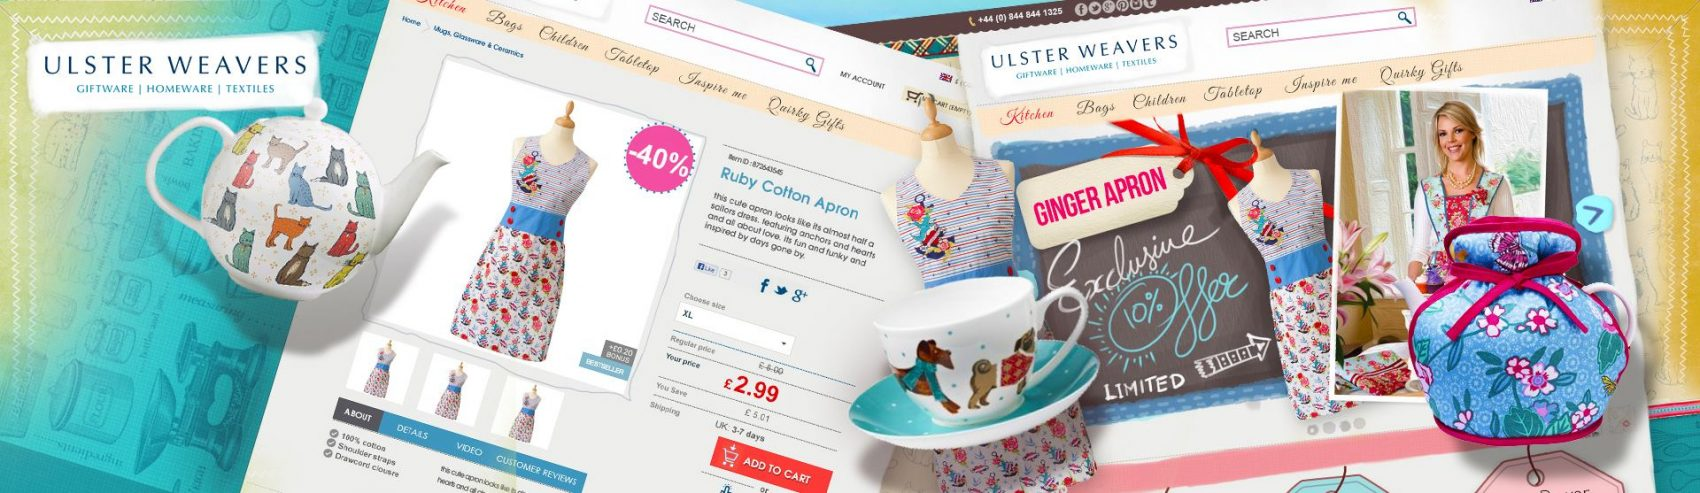 ulster weavers wholesale magento banner